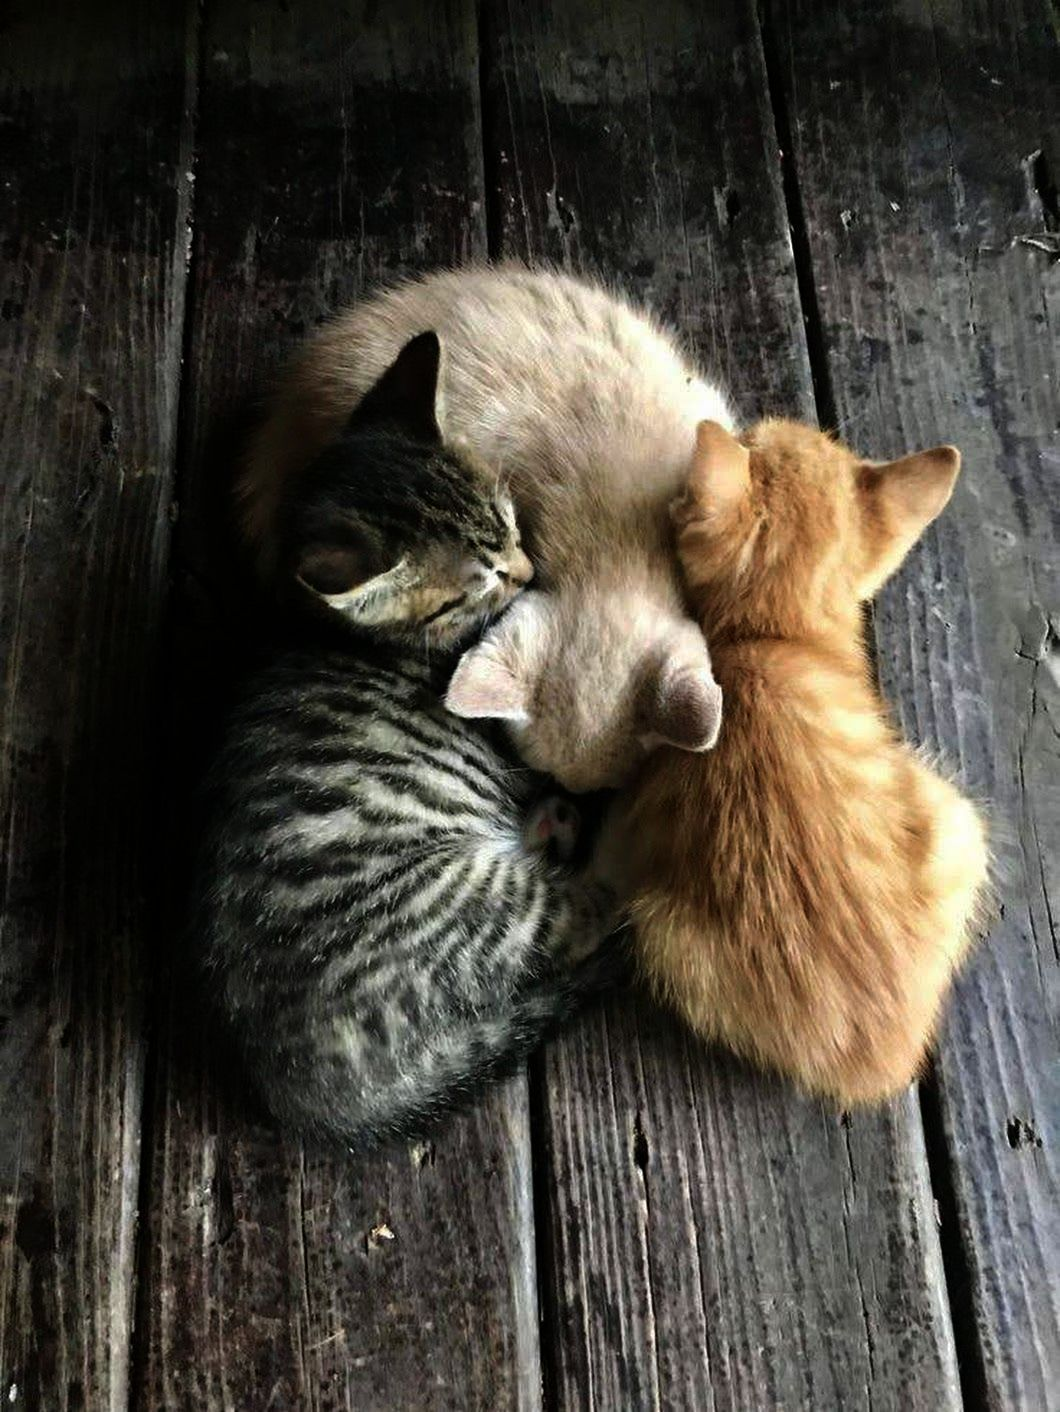 Cute Kittens Being Funny Cute Cats Buzzfeed Cute Cats Cats Kittens